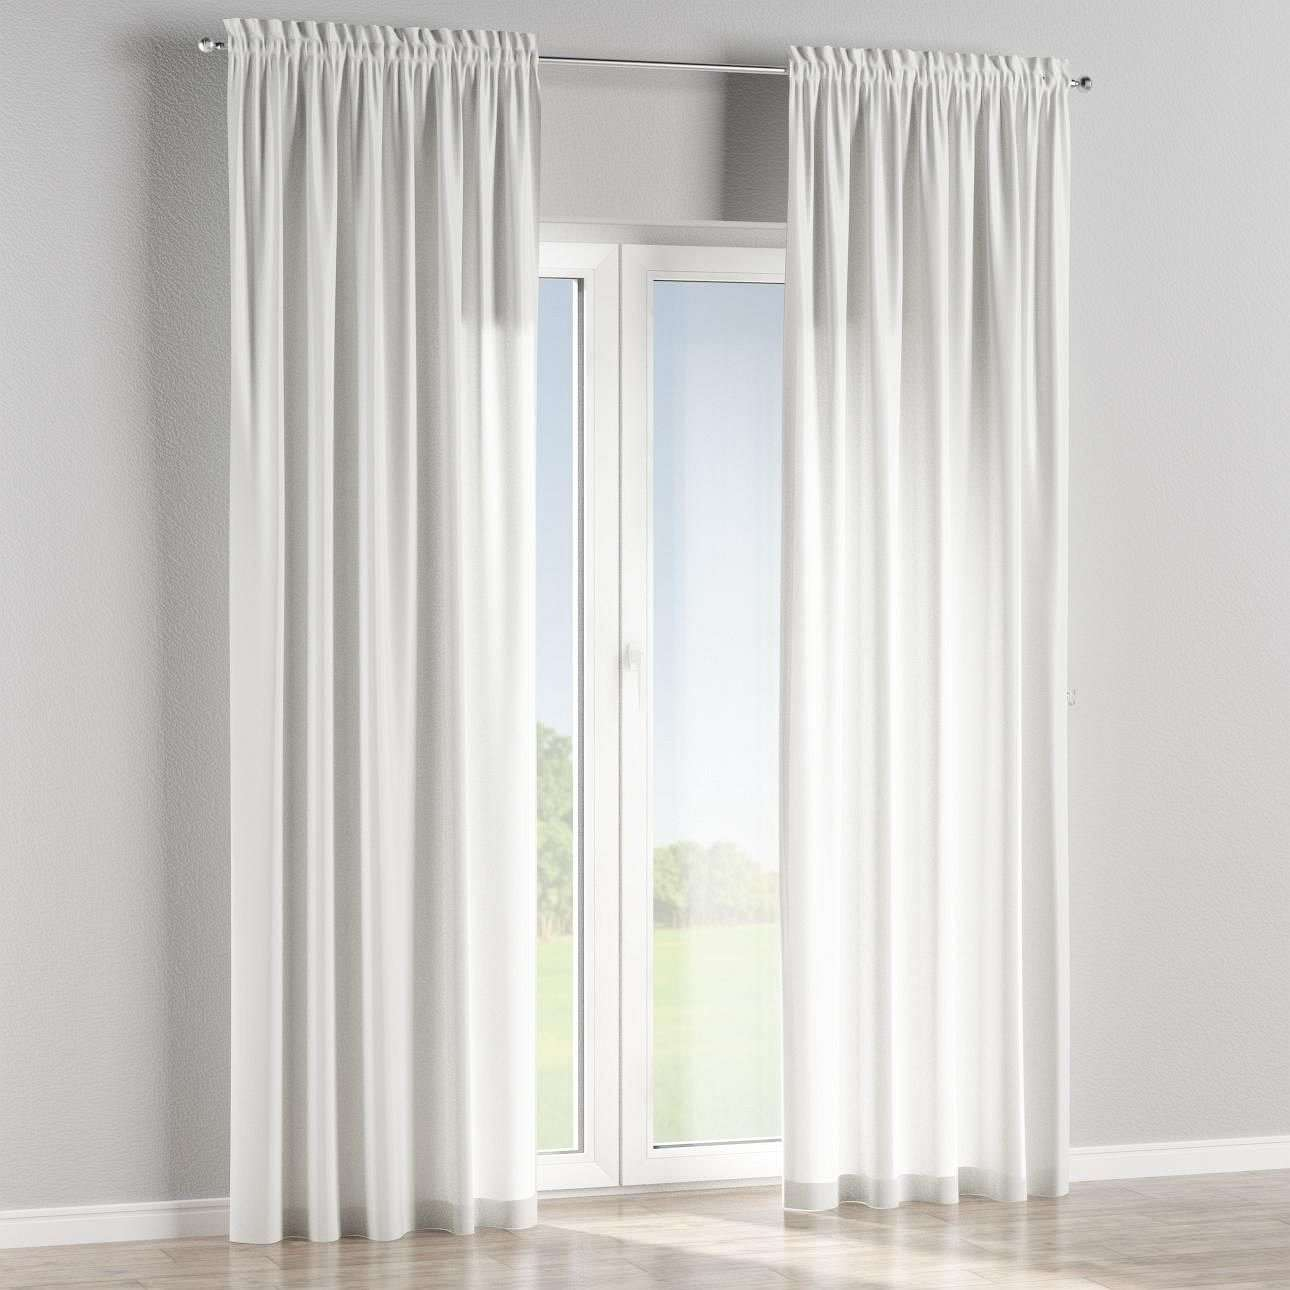 Slot and frill curtains in collection Kids/Baby, fabric: 119-13